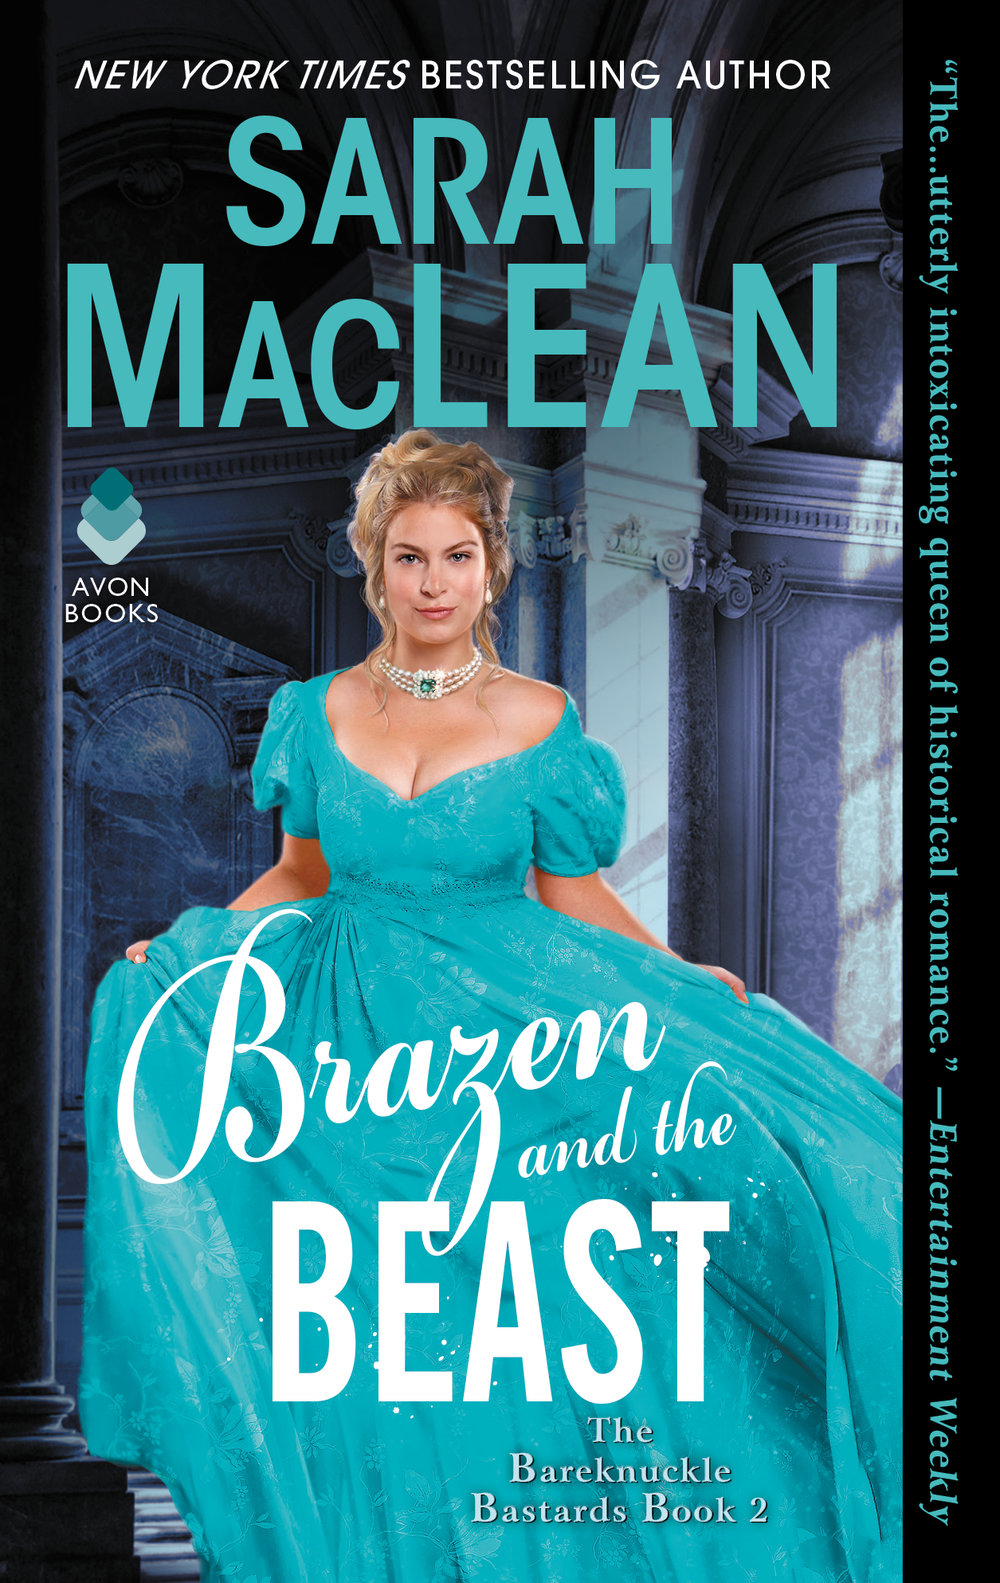 Brazen+&+the+Beast+Cover.jpg